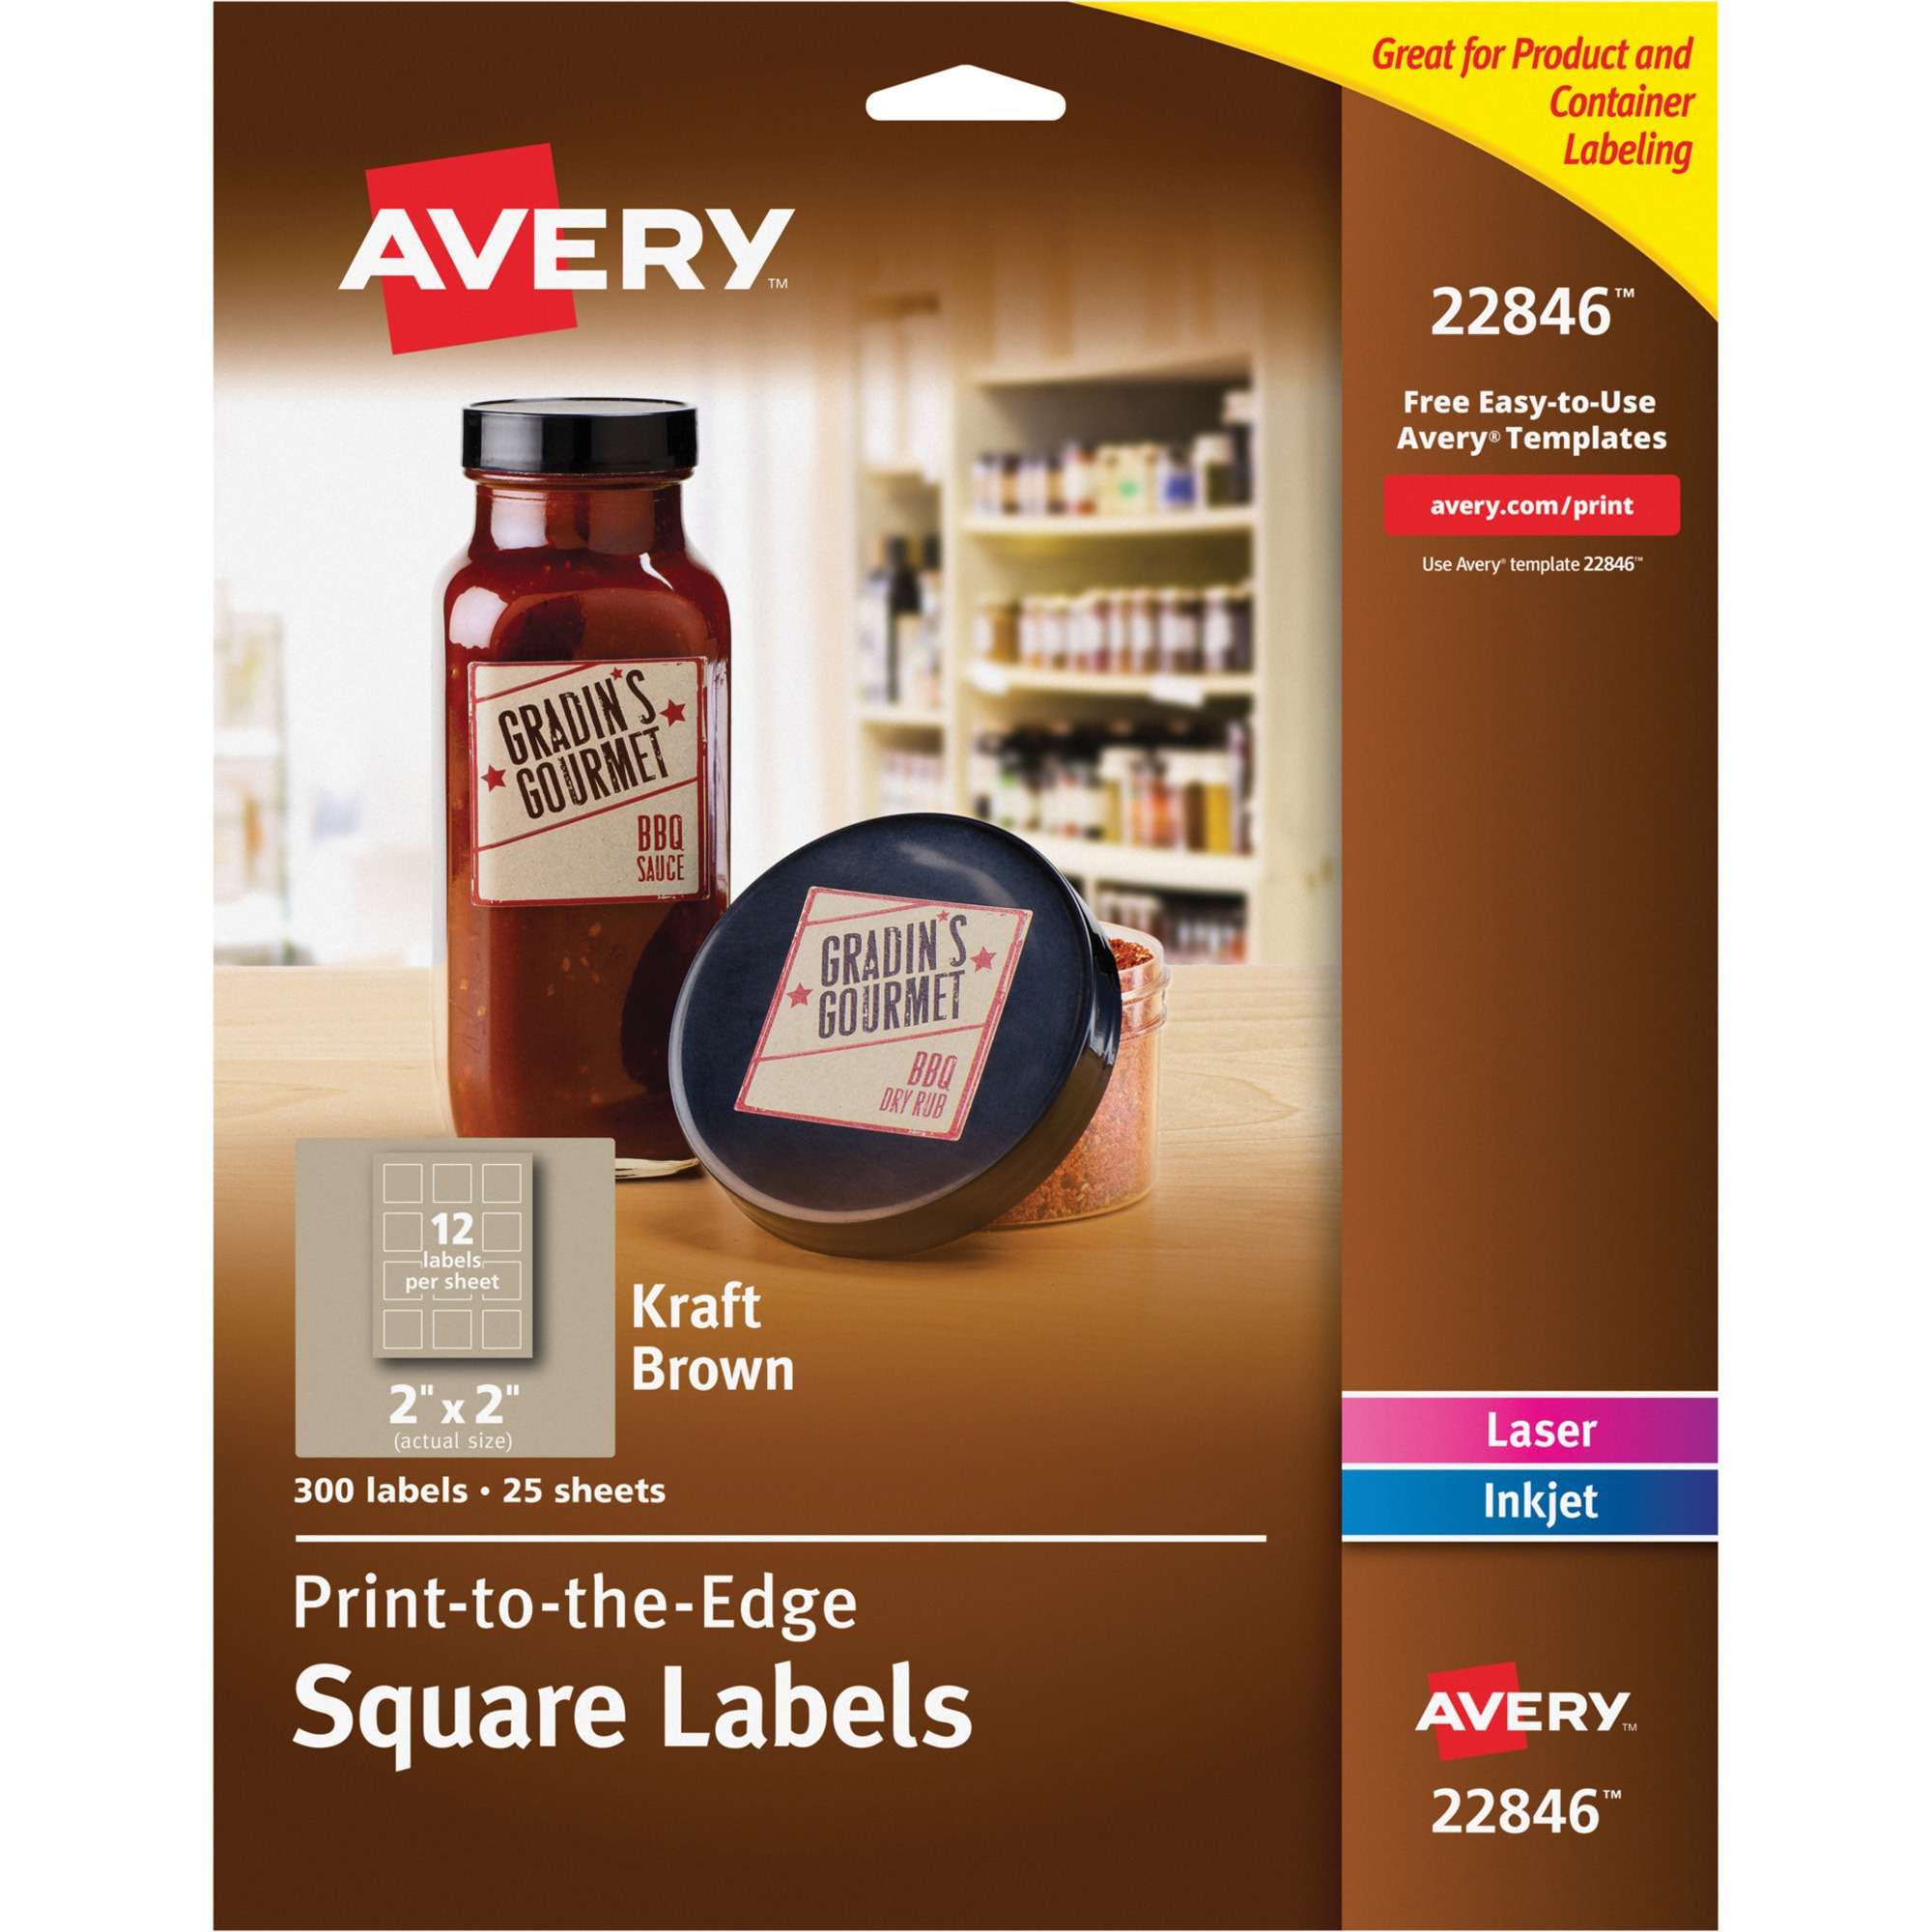 Avery Square Print-to-the-Edge Labels, 2 x 2, Kraft Brown, 300/Pack